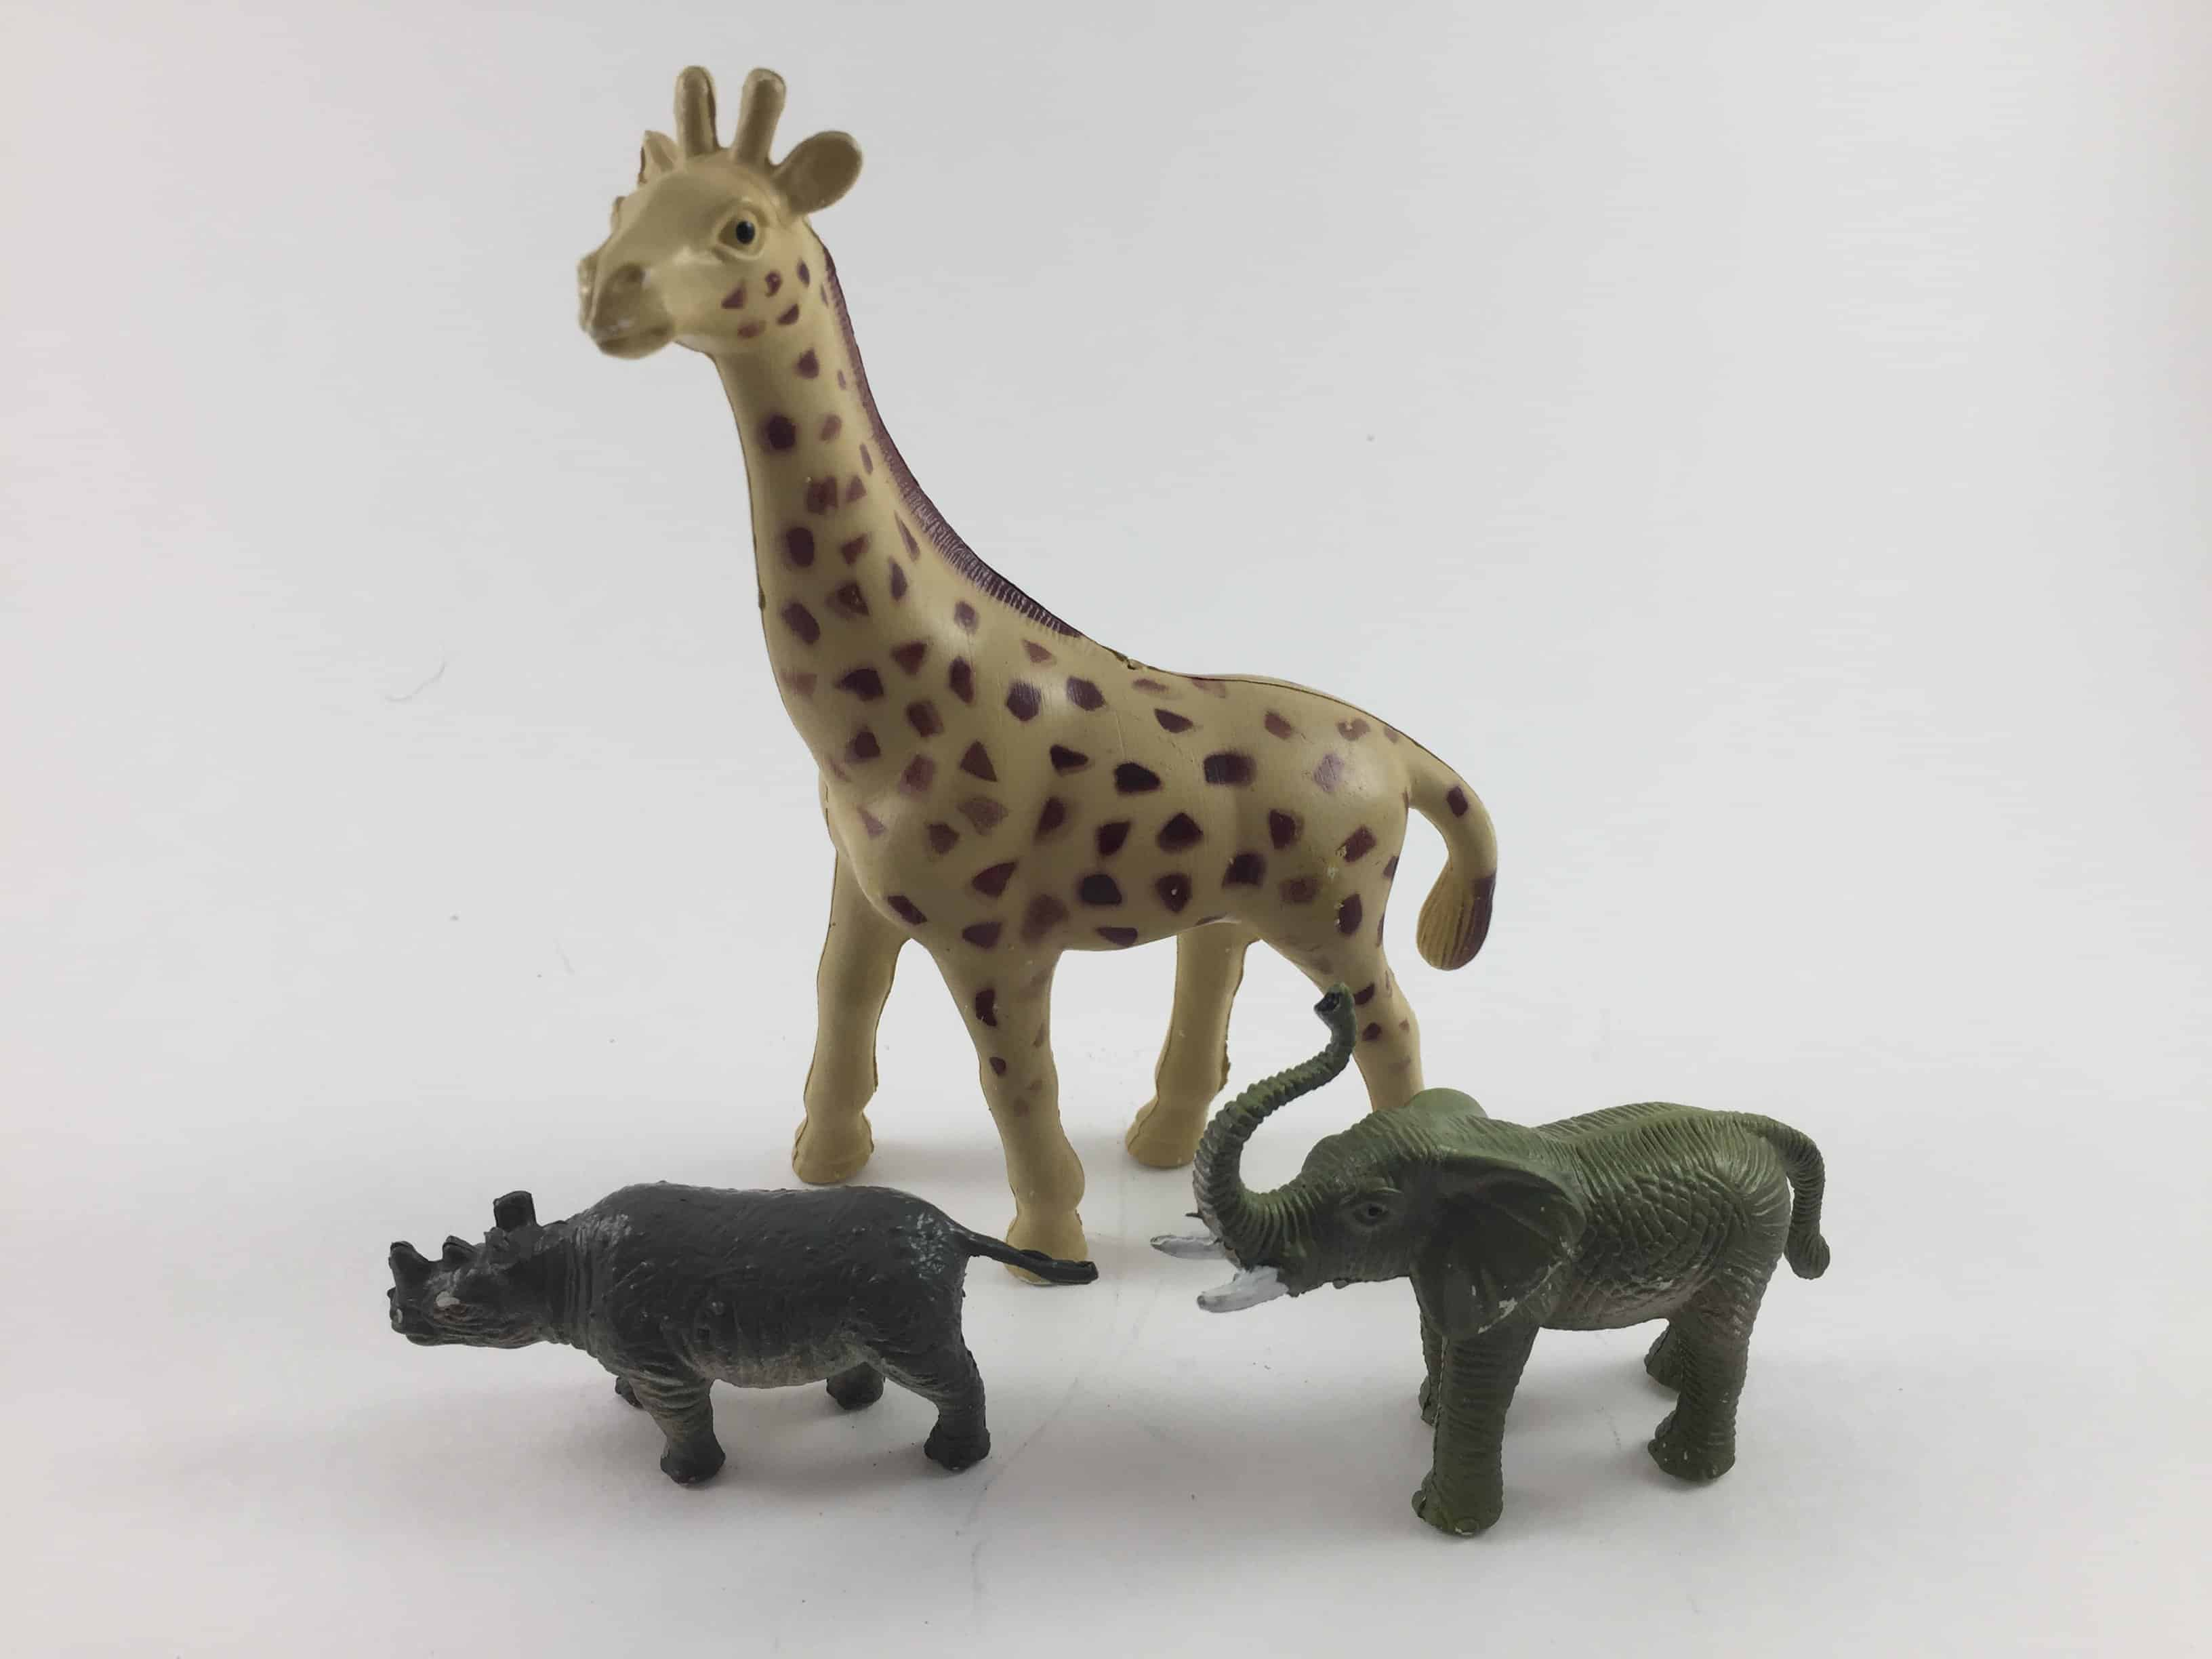 Plastic animals for refrigerator magnets